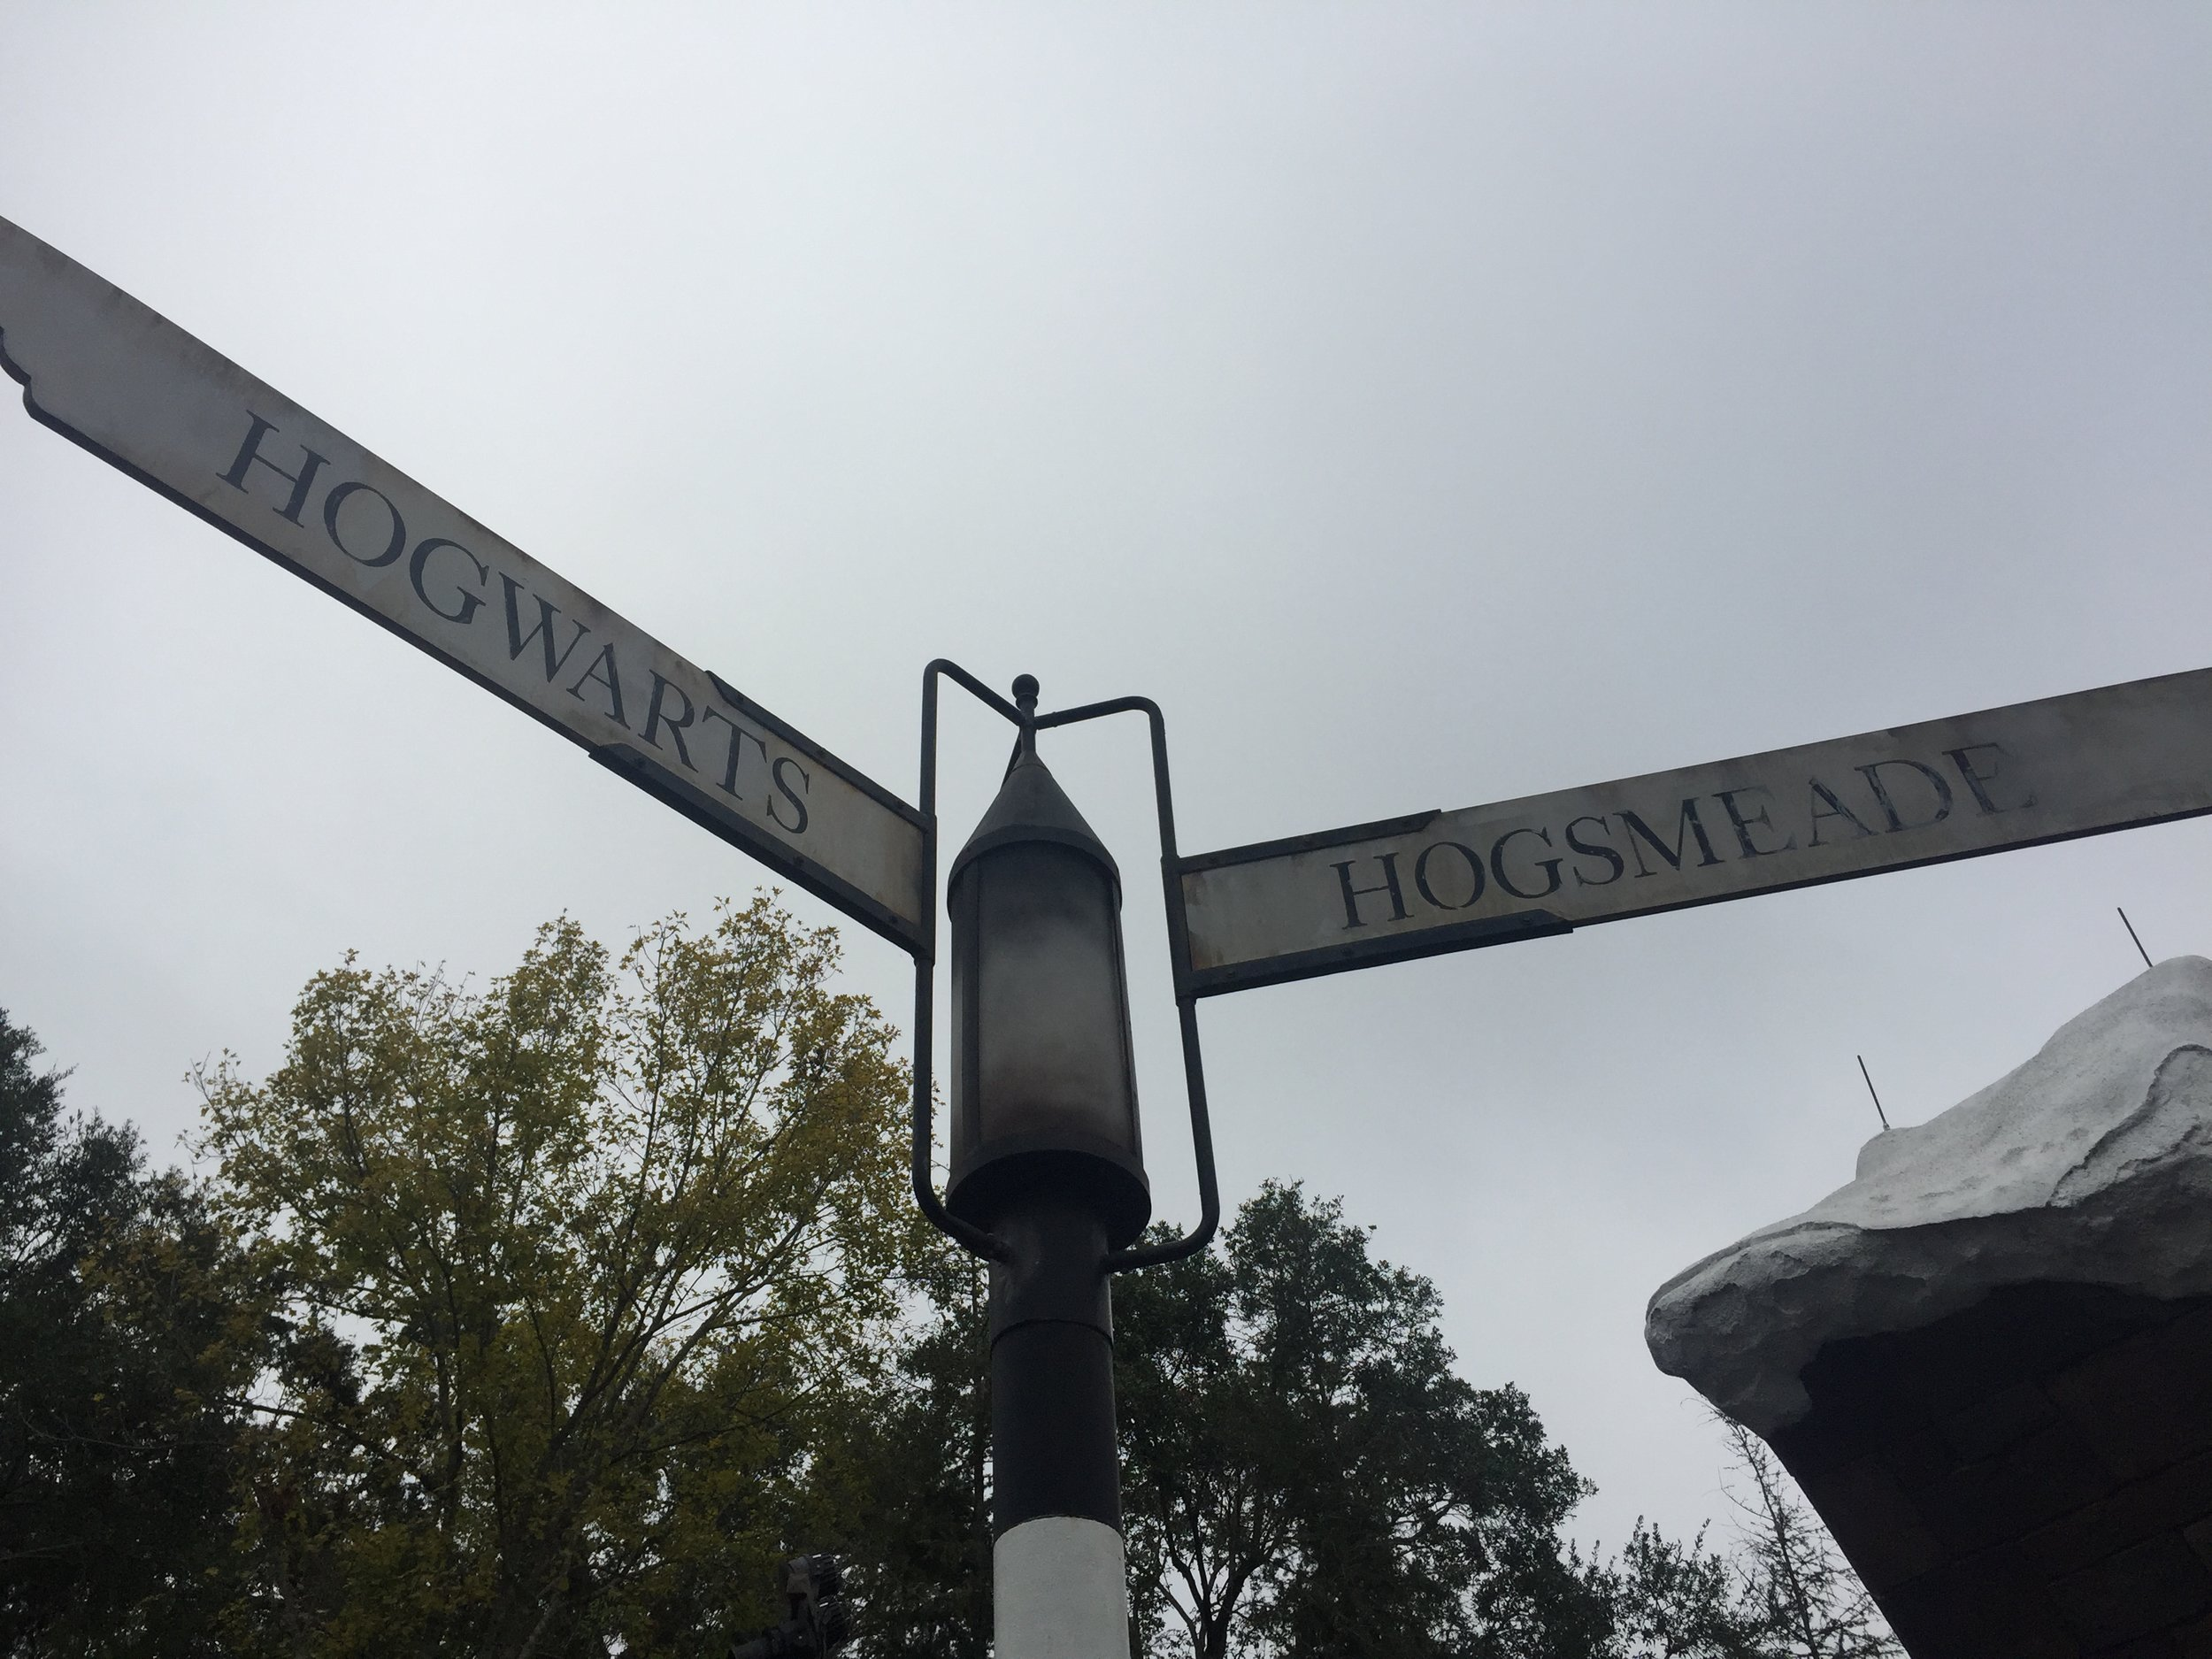 One of Vanali's most memorable experiences was visiting Harry Potter World in Orlando, FL.